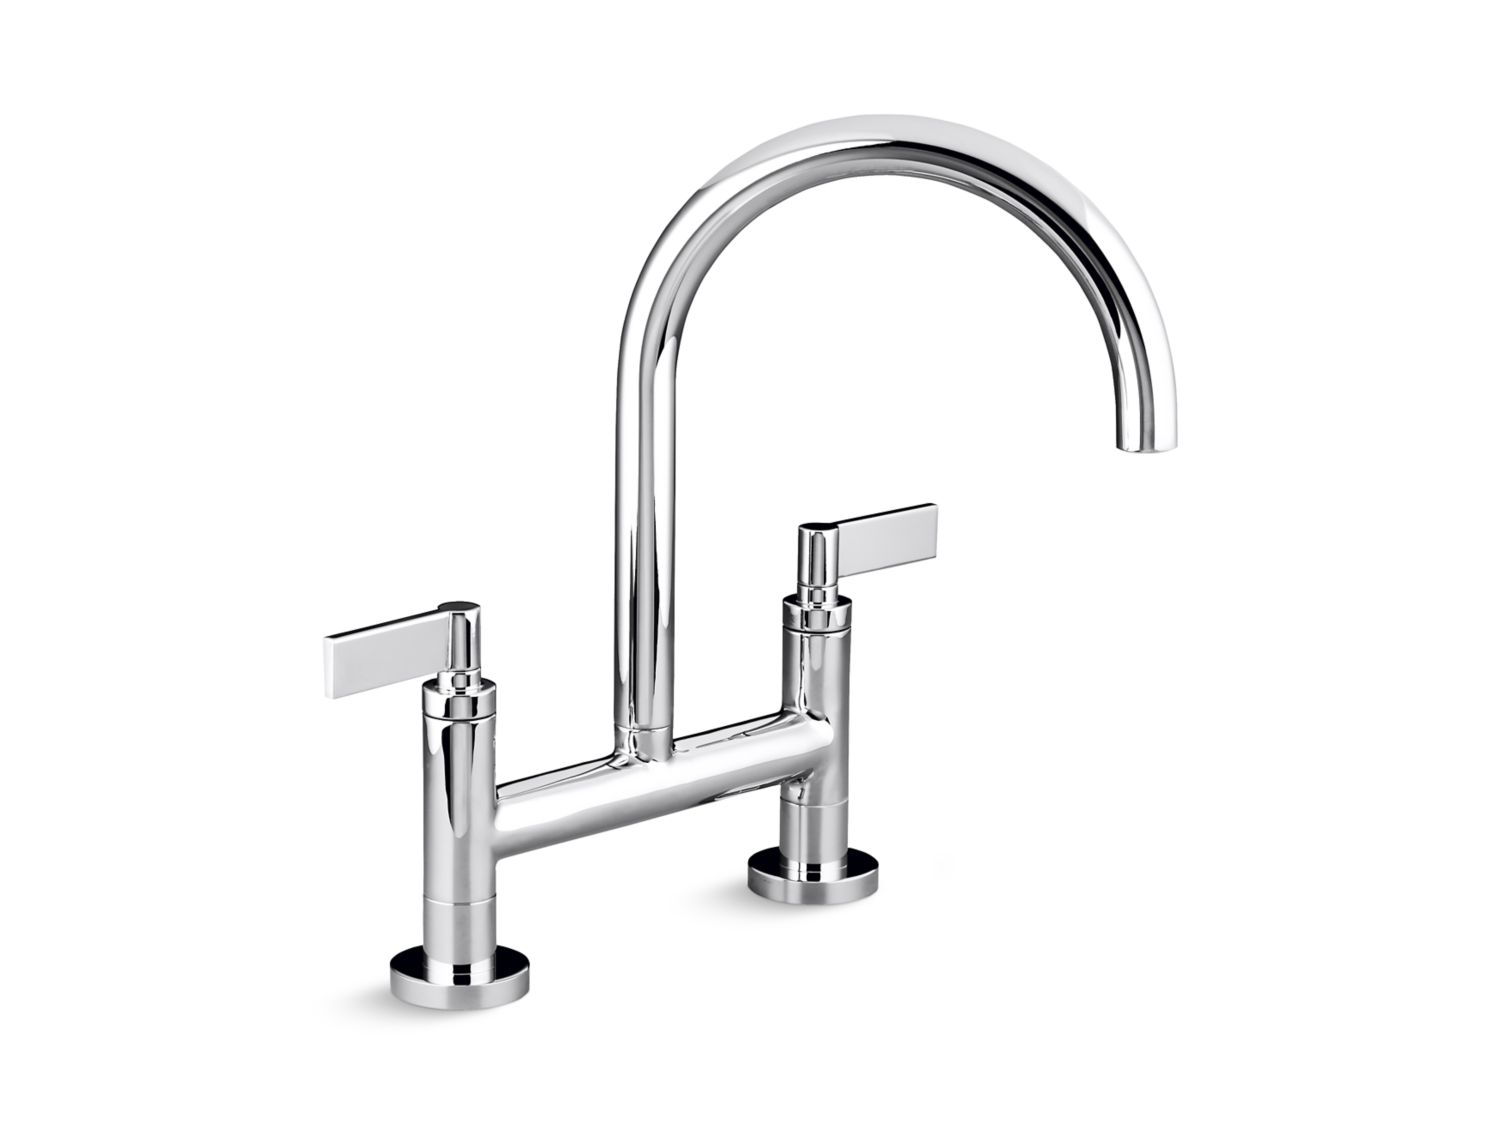 One Deck-Mounted Bridge Kitchen Faucet, Lever Handles | P25202-LV ...